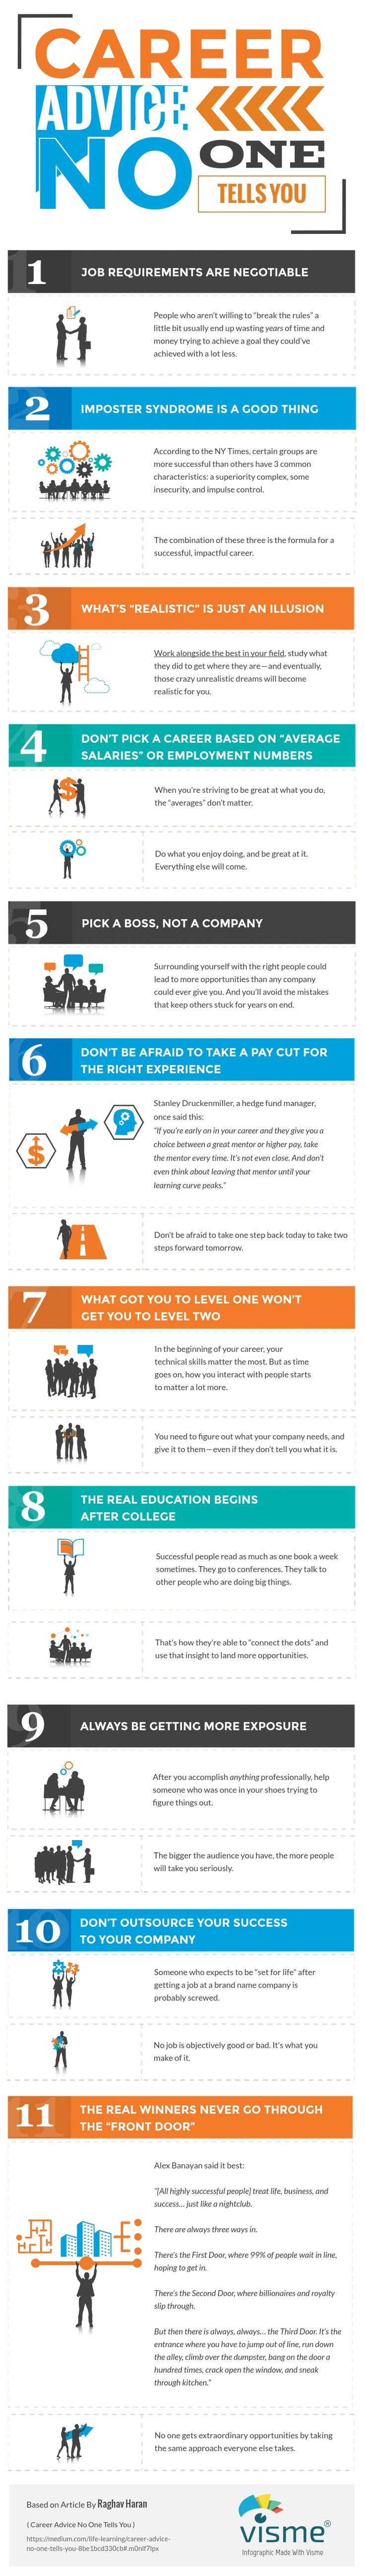 Lovely Career Infographic : Career Advice No One Tells You Infographicu2026 25 June  2017